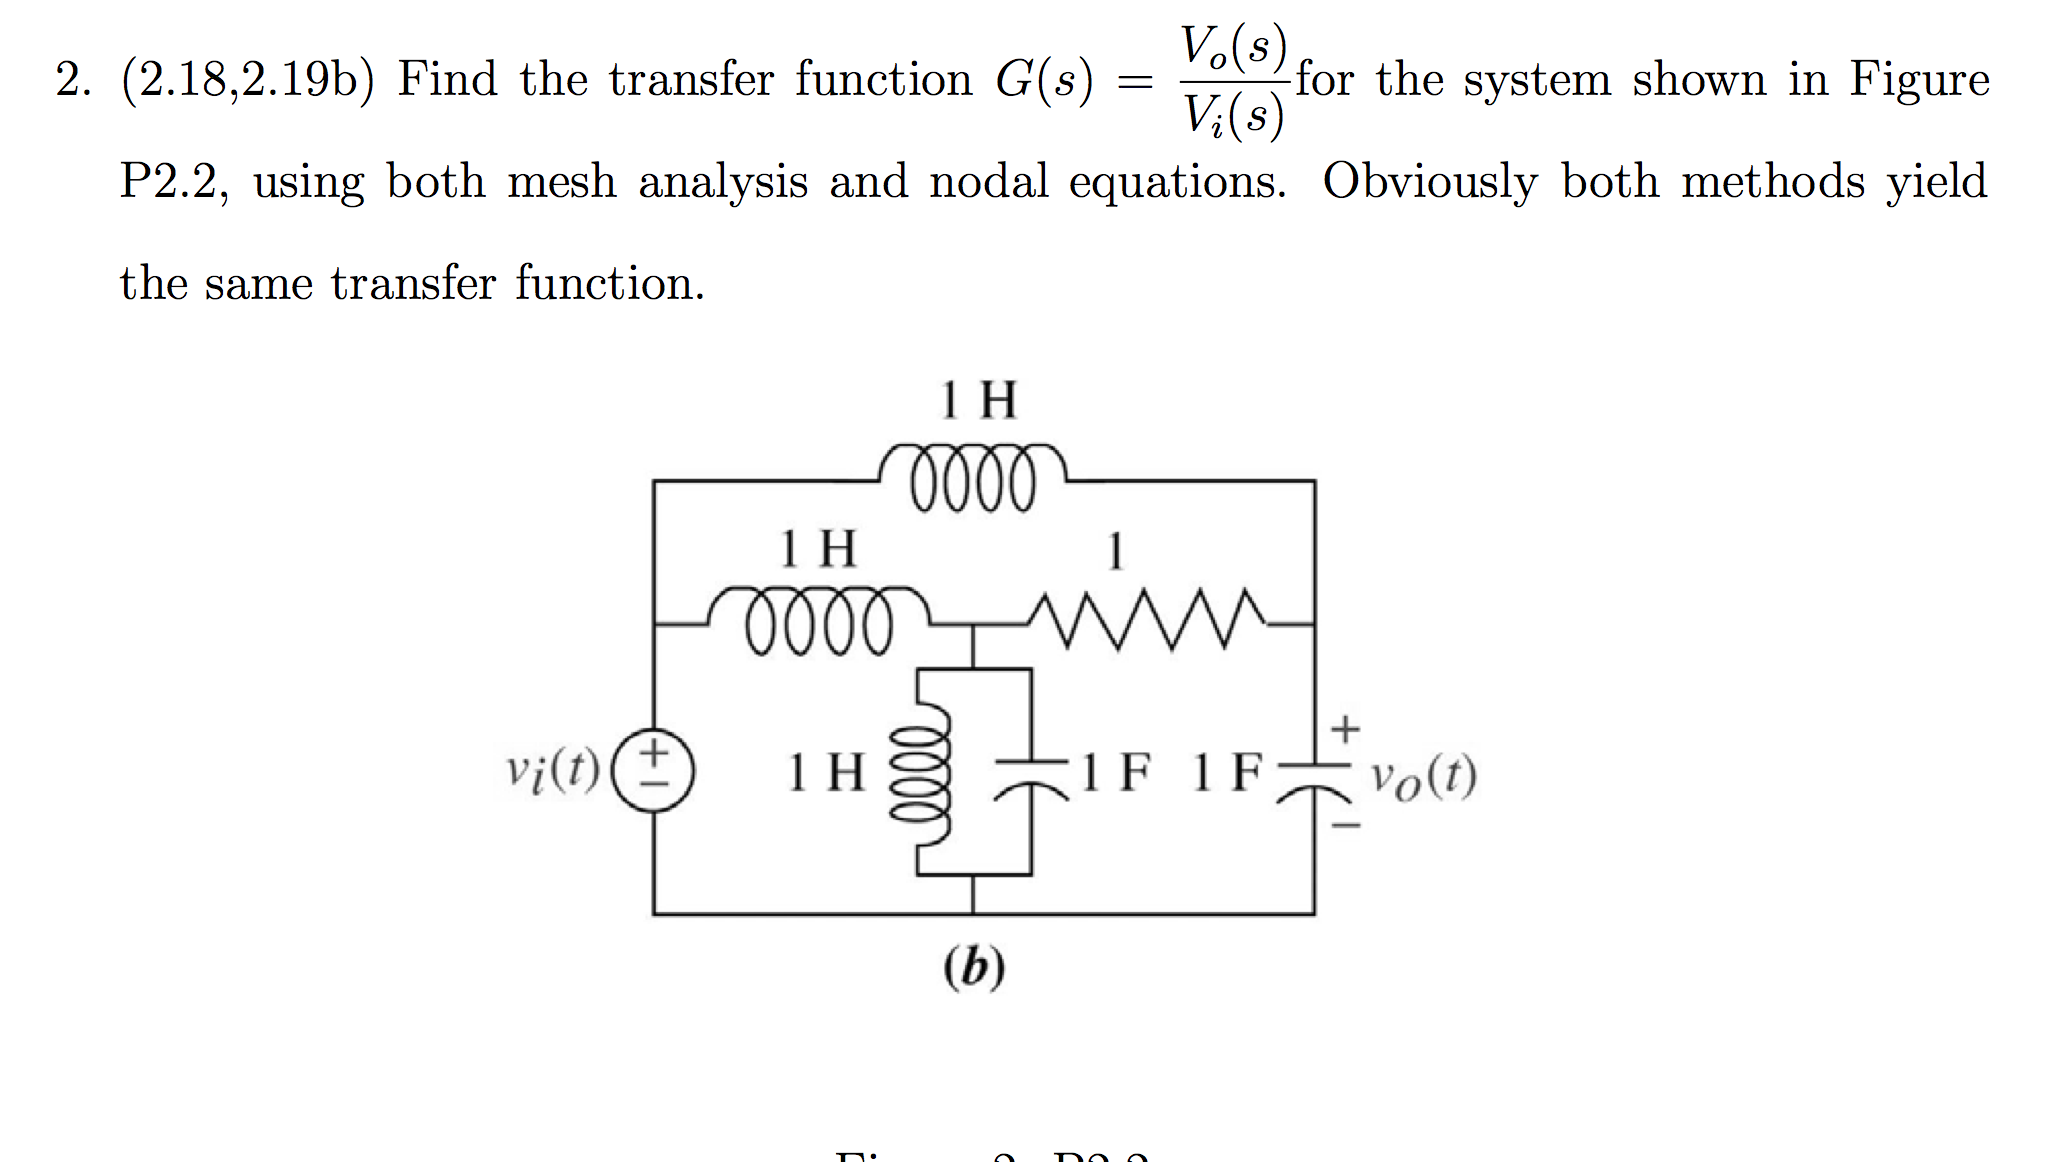 Find the transfer function G(s) = Vo(s) / Vi(s) fo